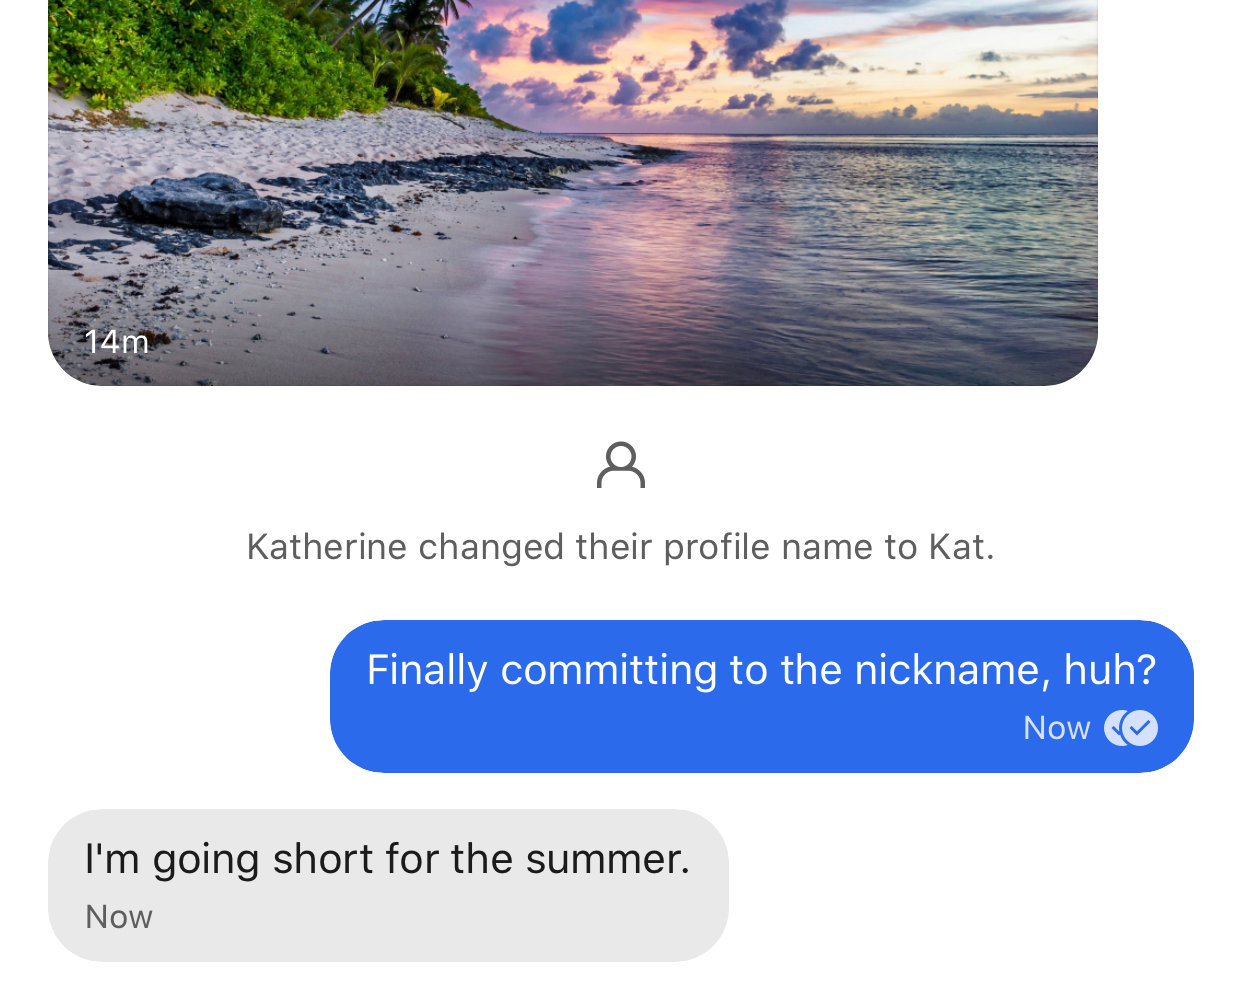 Screenshot of a conversation thread where 'Katherine' has changed their profile name to 'Kat' Person 1: 'Finally committing to the nickname, huh?' Person 2: 'I'm going short for the summer.'